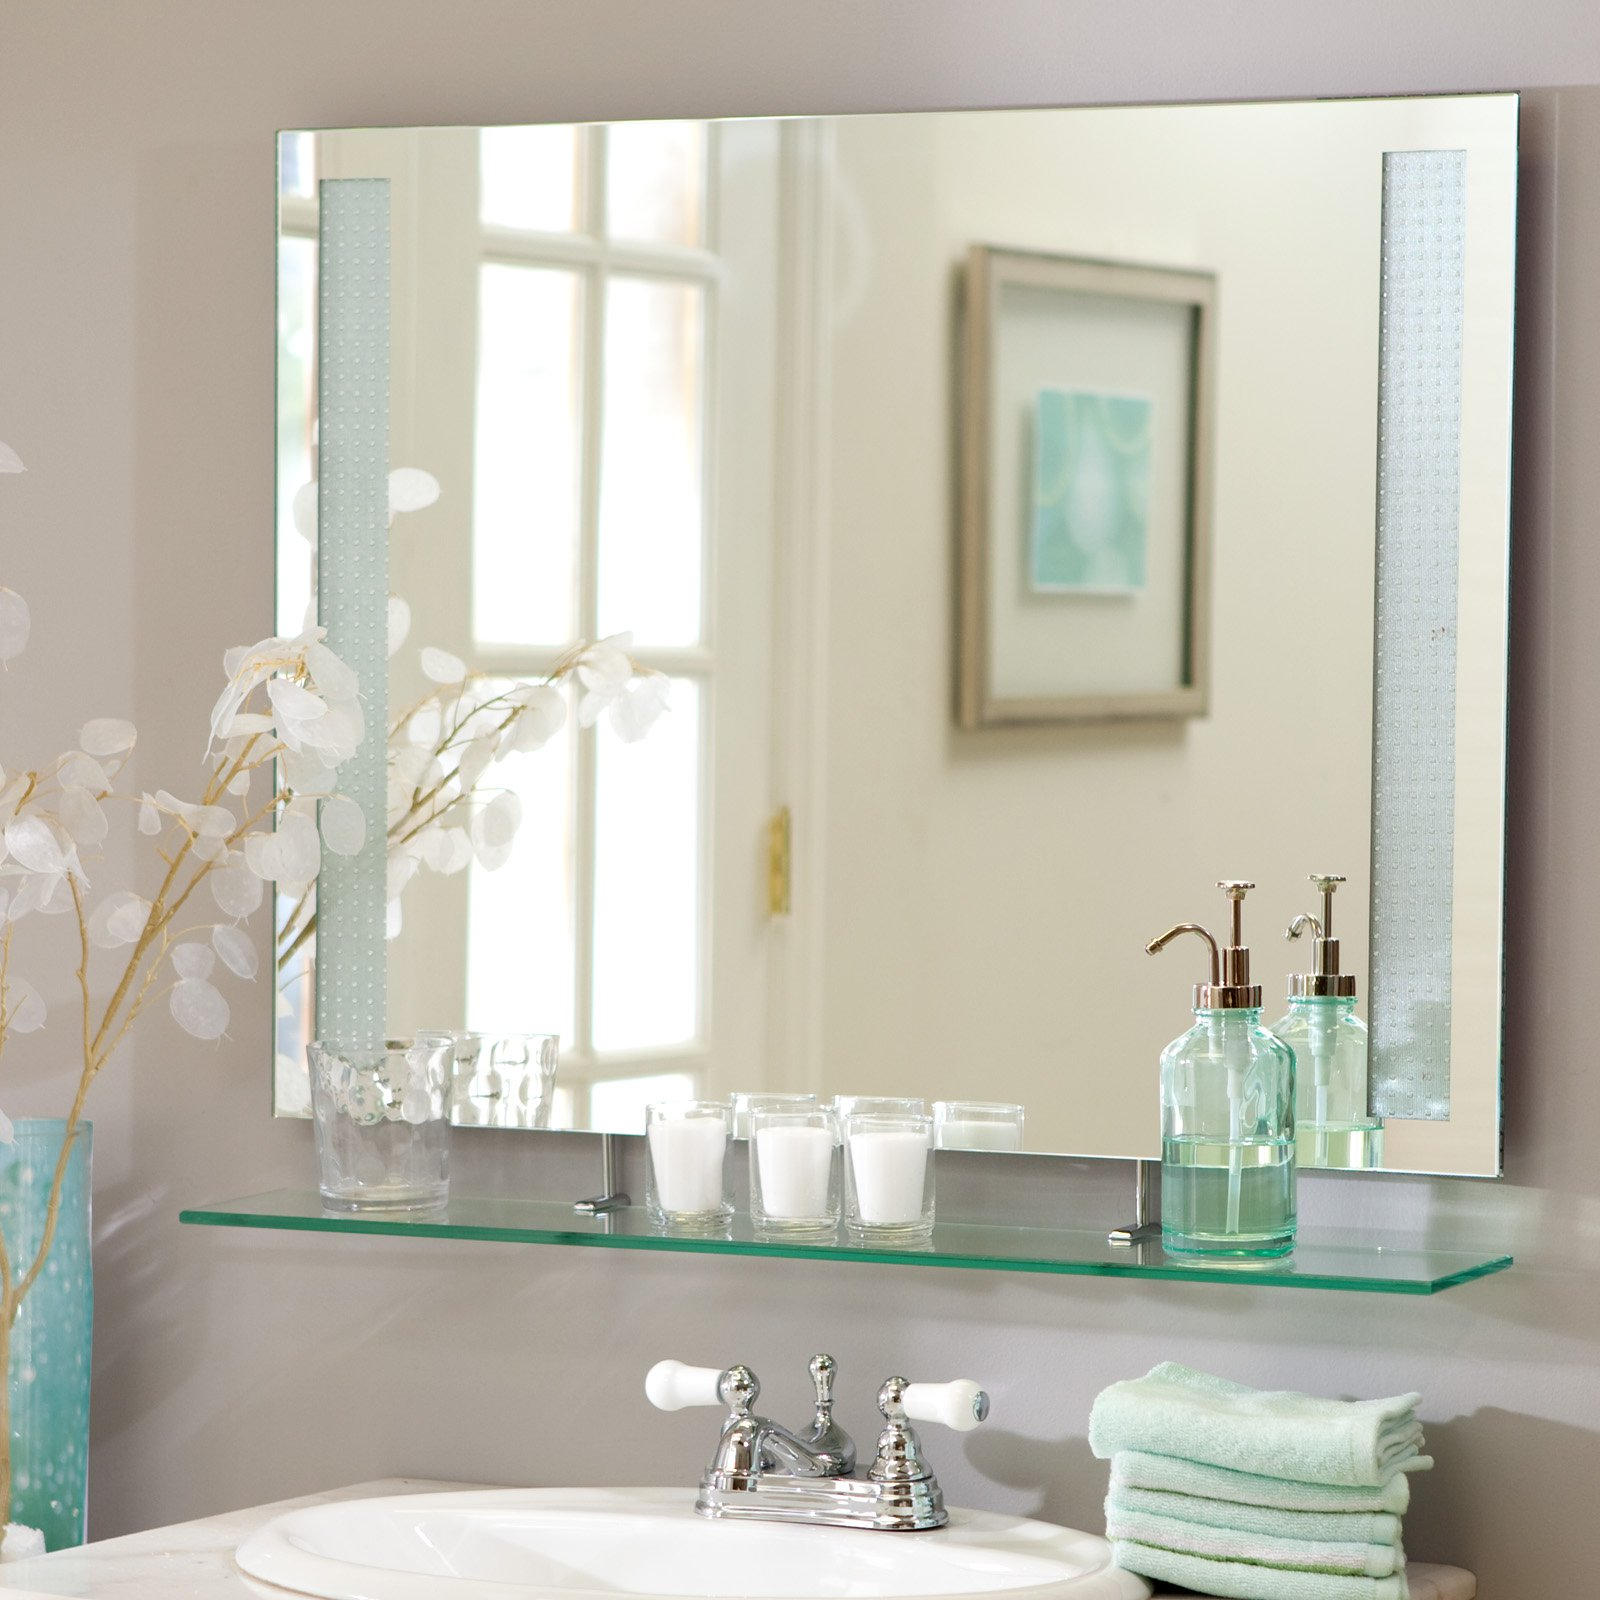 Décor Wonderland Frameless Roxi Wall Mirror with Shelf 31.5W x 23.6H in. by Decor Wonderland of US